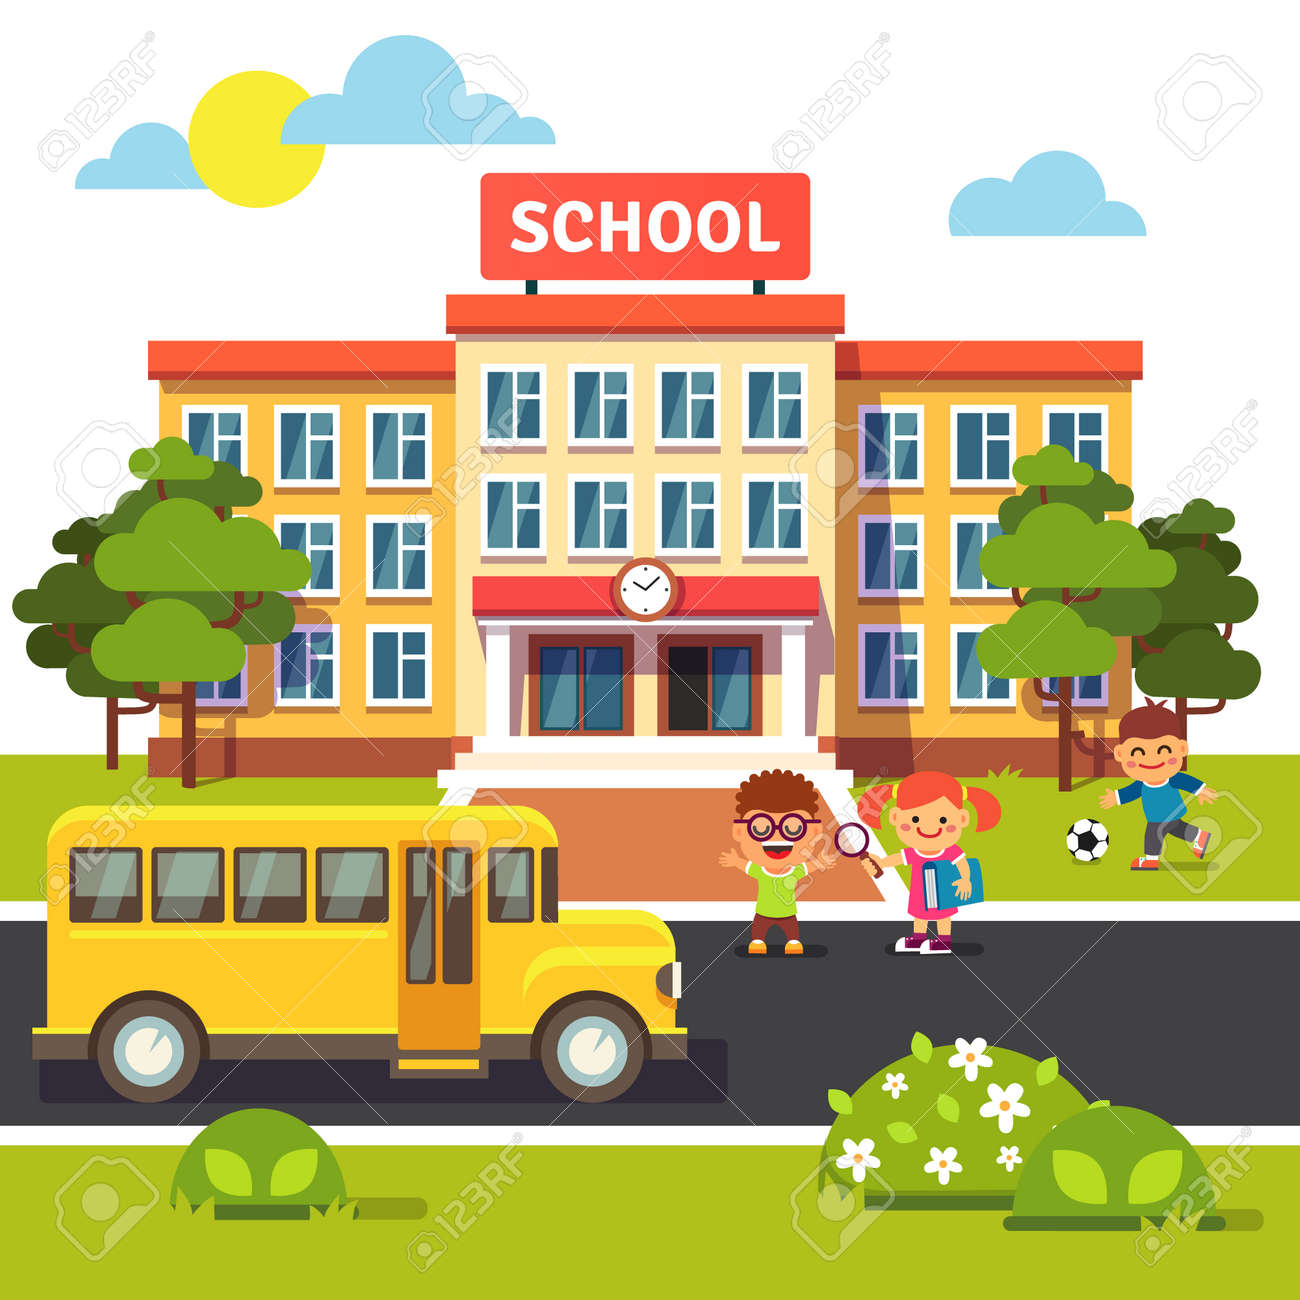 School building, bus and front yard with students children. Flat style vector illustration isolated on white background. - 53122104